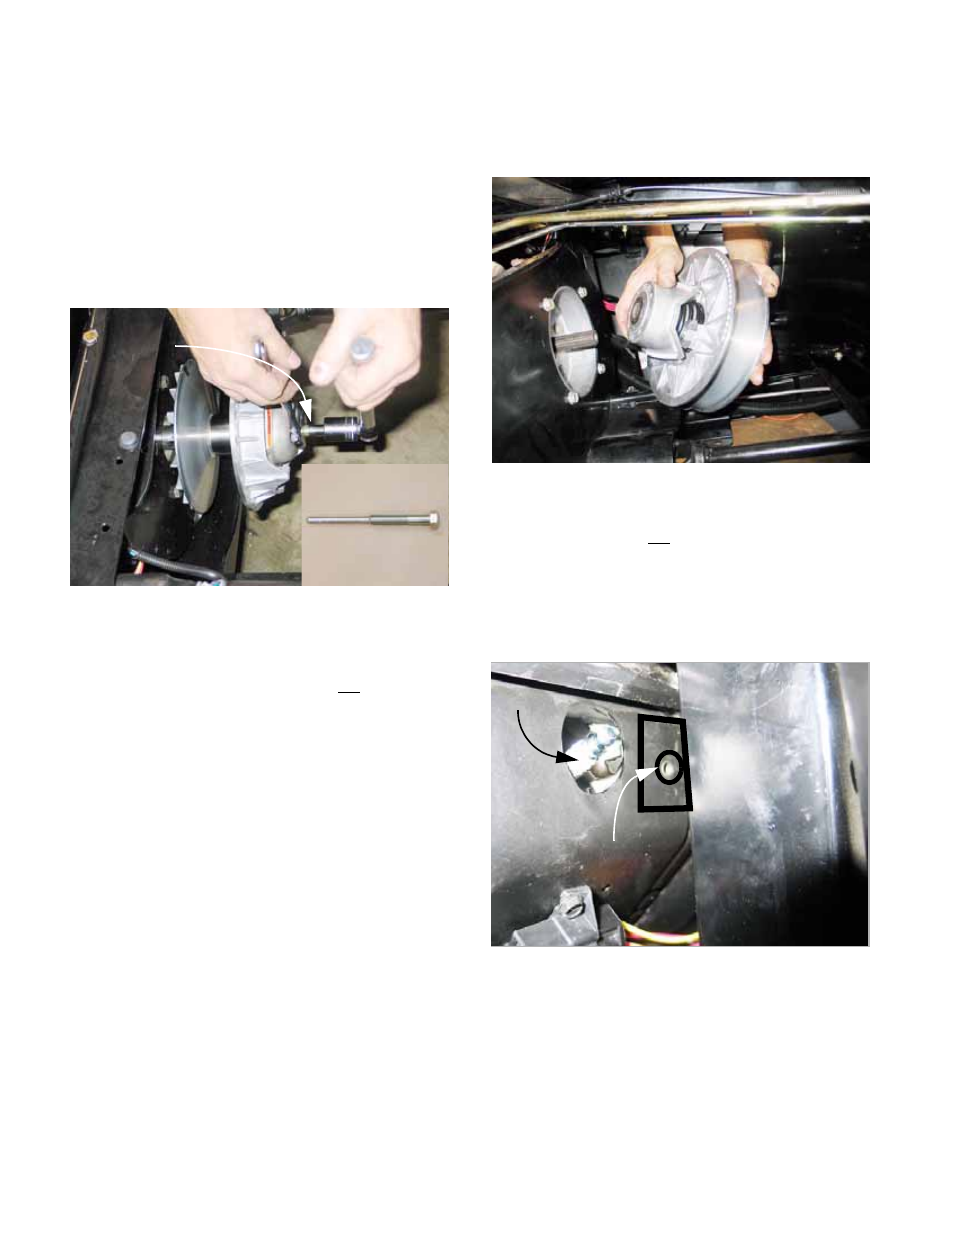 Kohler Enclosed Cvt Addendum Cub Cadet 4 X Volunteer User Manual 316 Engine Schematics Page 72 328